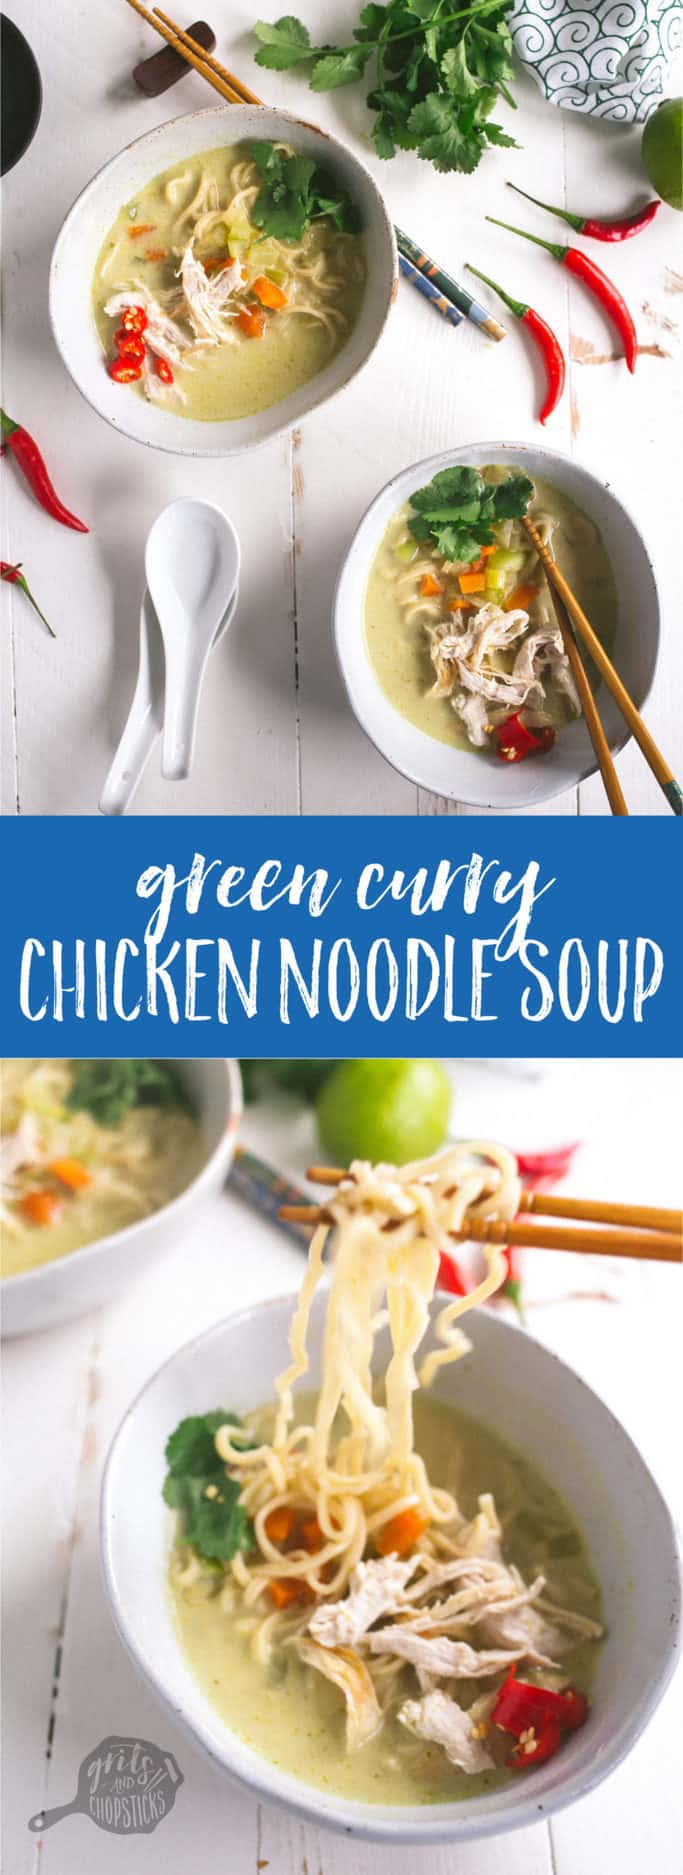 This amazing green curry chicken noodle soup recipe is easy to make and so super comforting